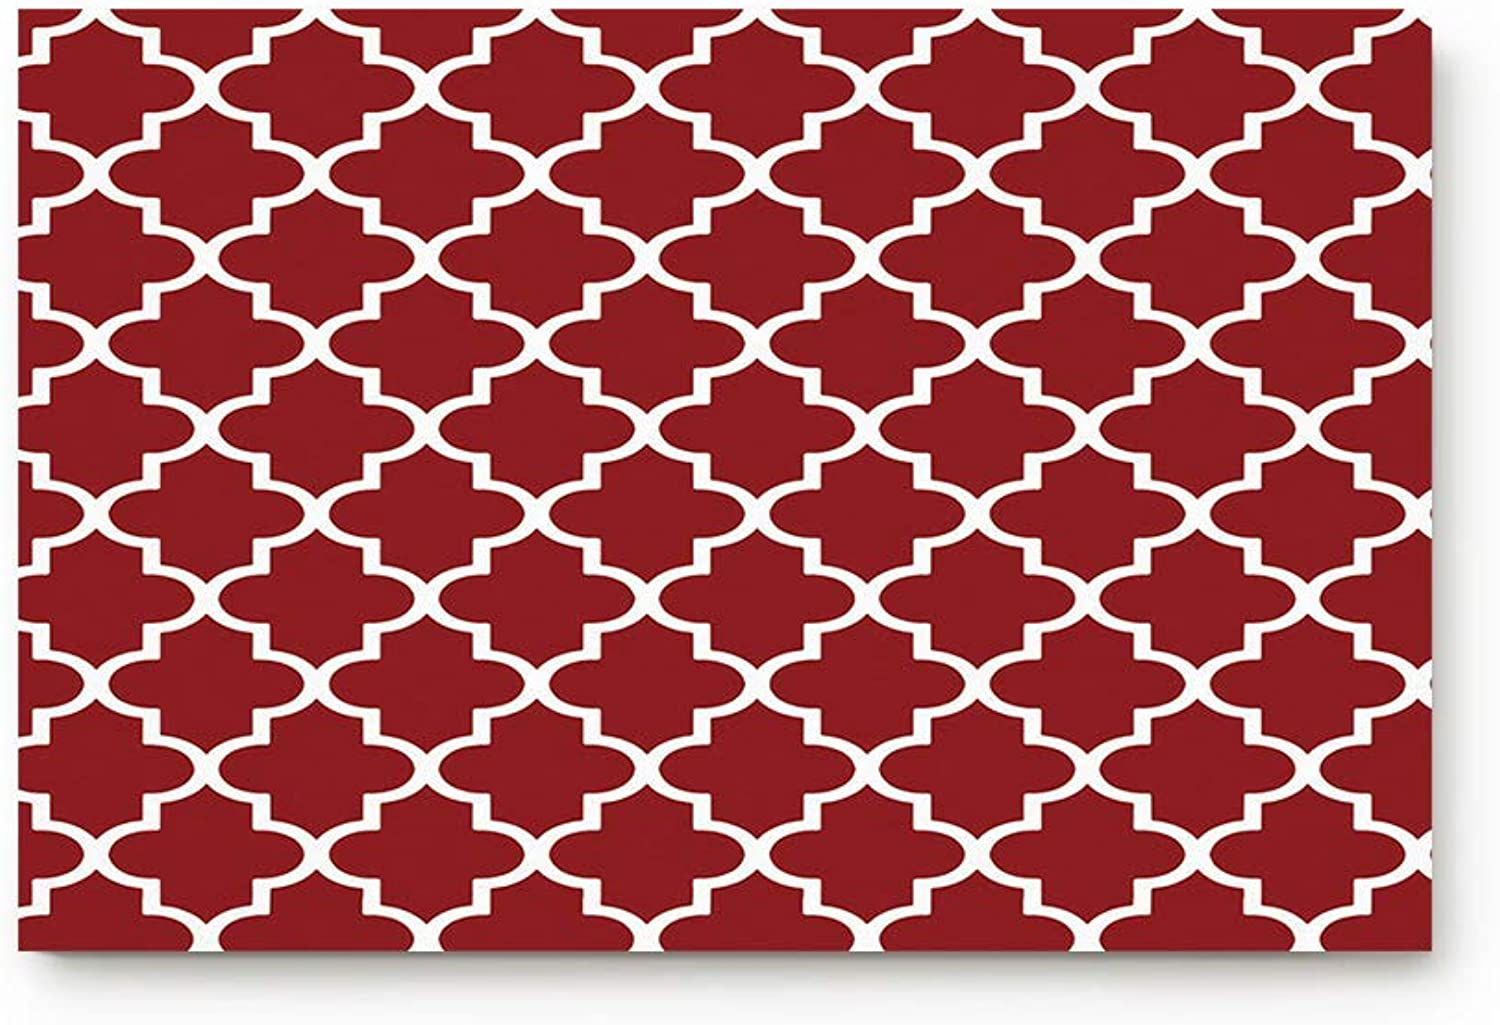 TAOGAN Doormat Rug Non-Slip Rubber Backing Geometric Rhombus Pattern Red White Indoor Decorative Mats Front Entrance Outside Patio Bedroom Bathroom Kitchen 20 x31.5